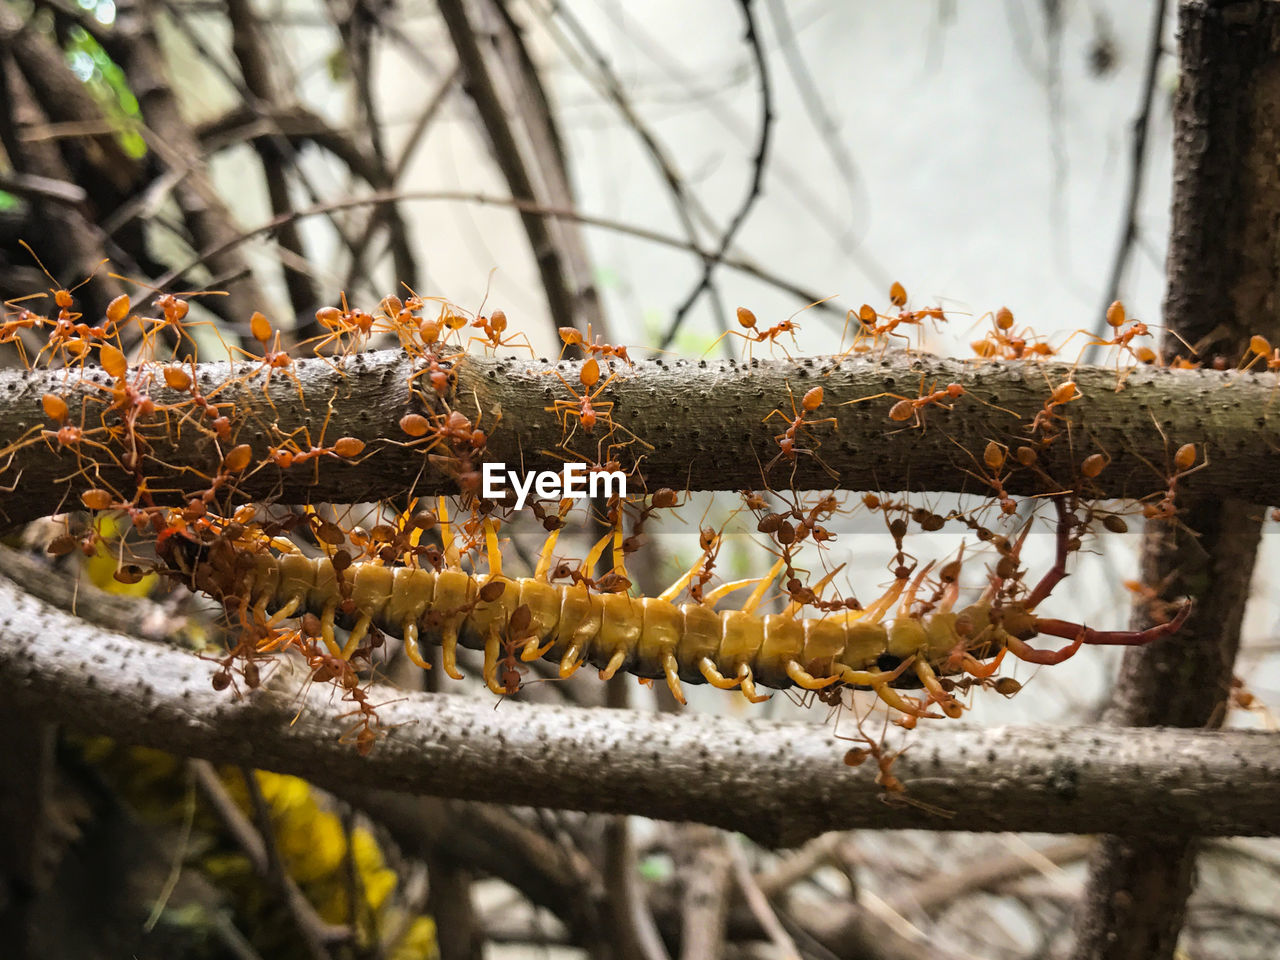 Close-Up Of Red Ants On Branch